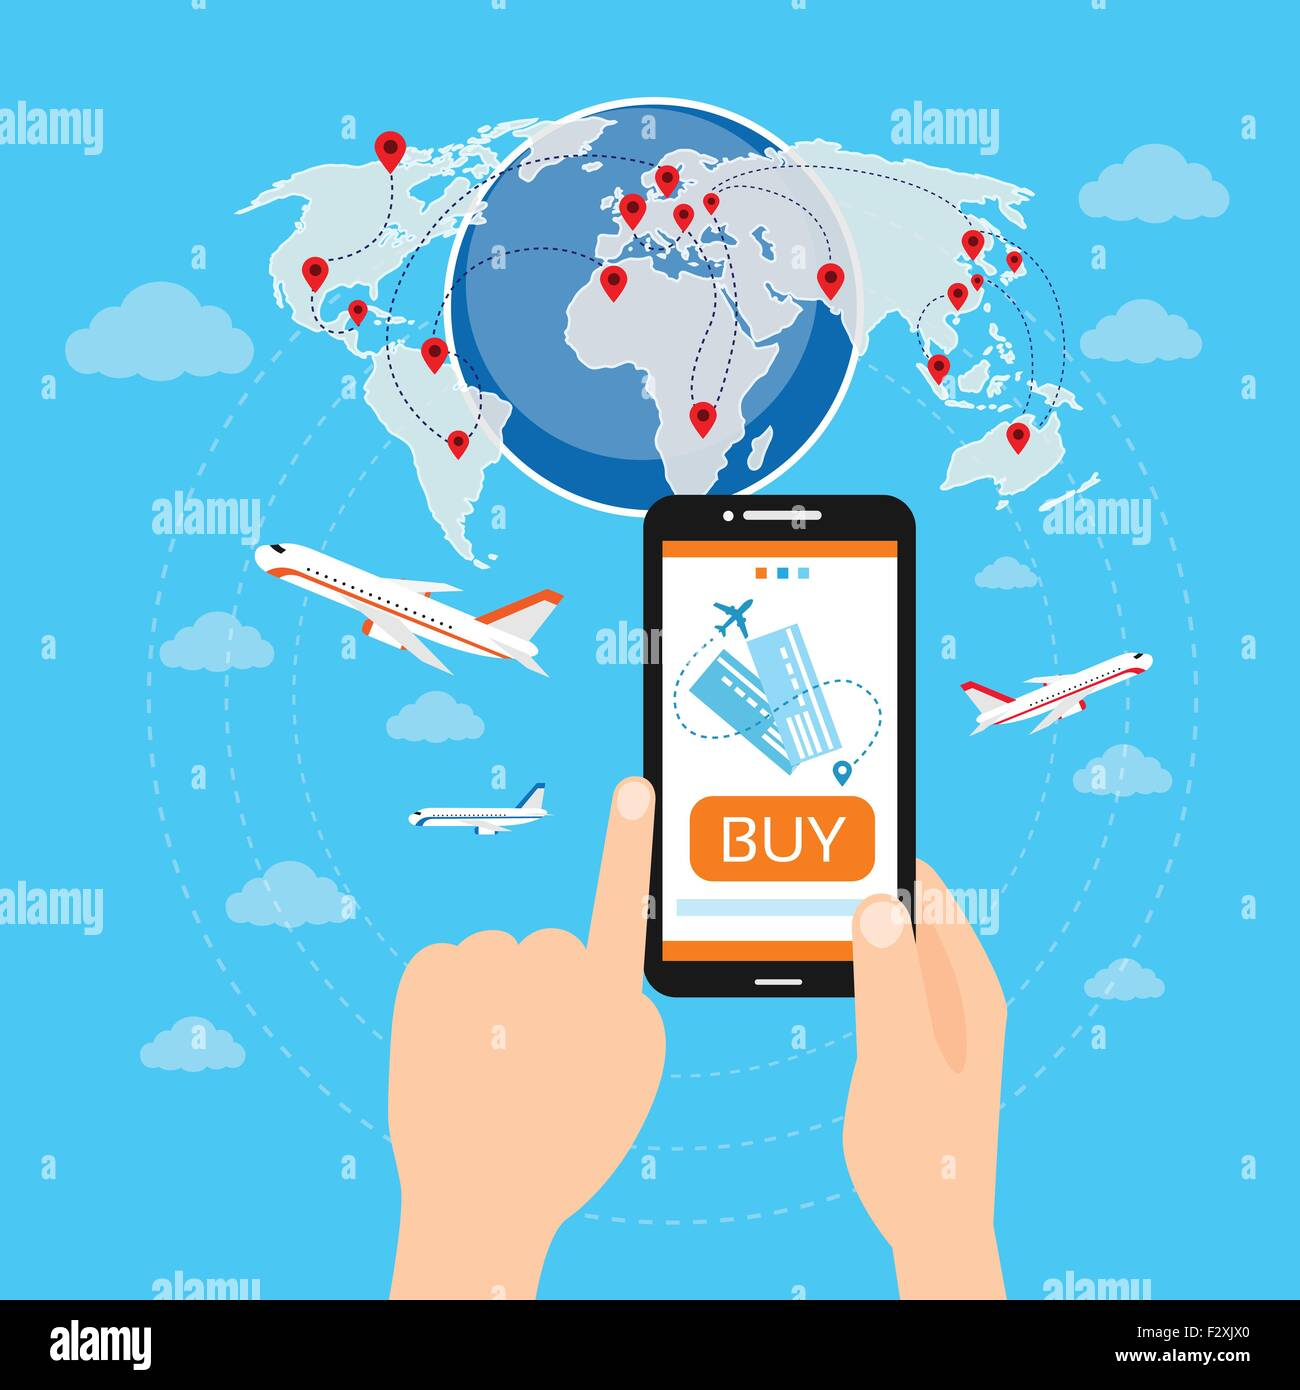 Buy ticket online smart phone application globe world map travel buy ticket online smart phone application globe world map travel vacation trip booking air plane flight gumiabroncs Images